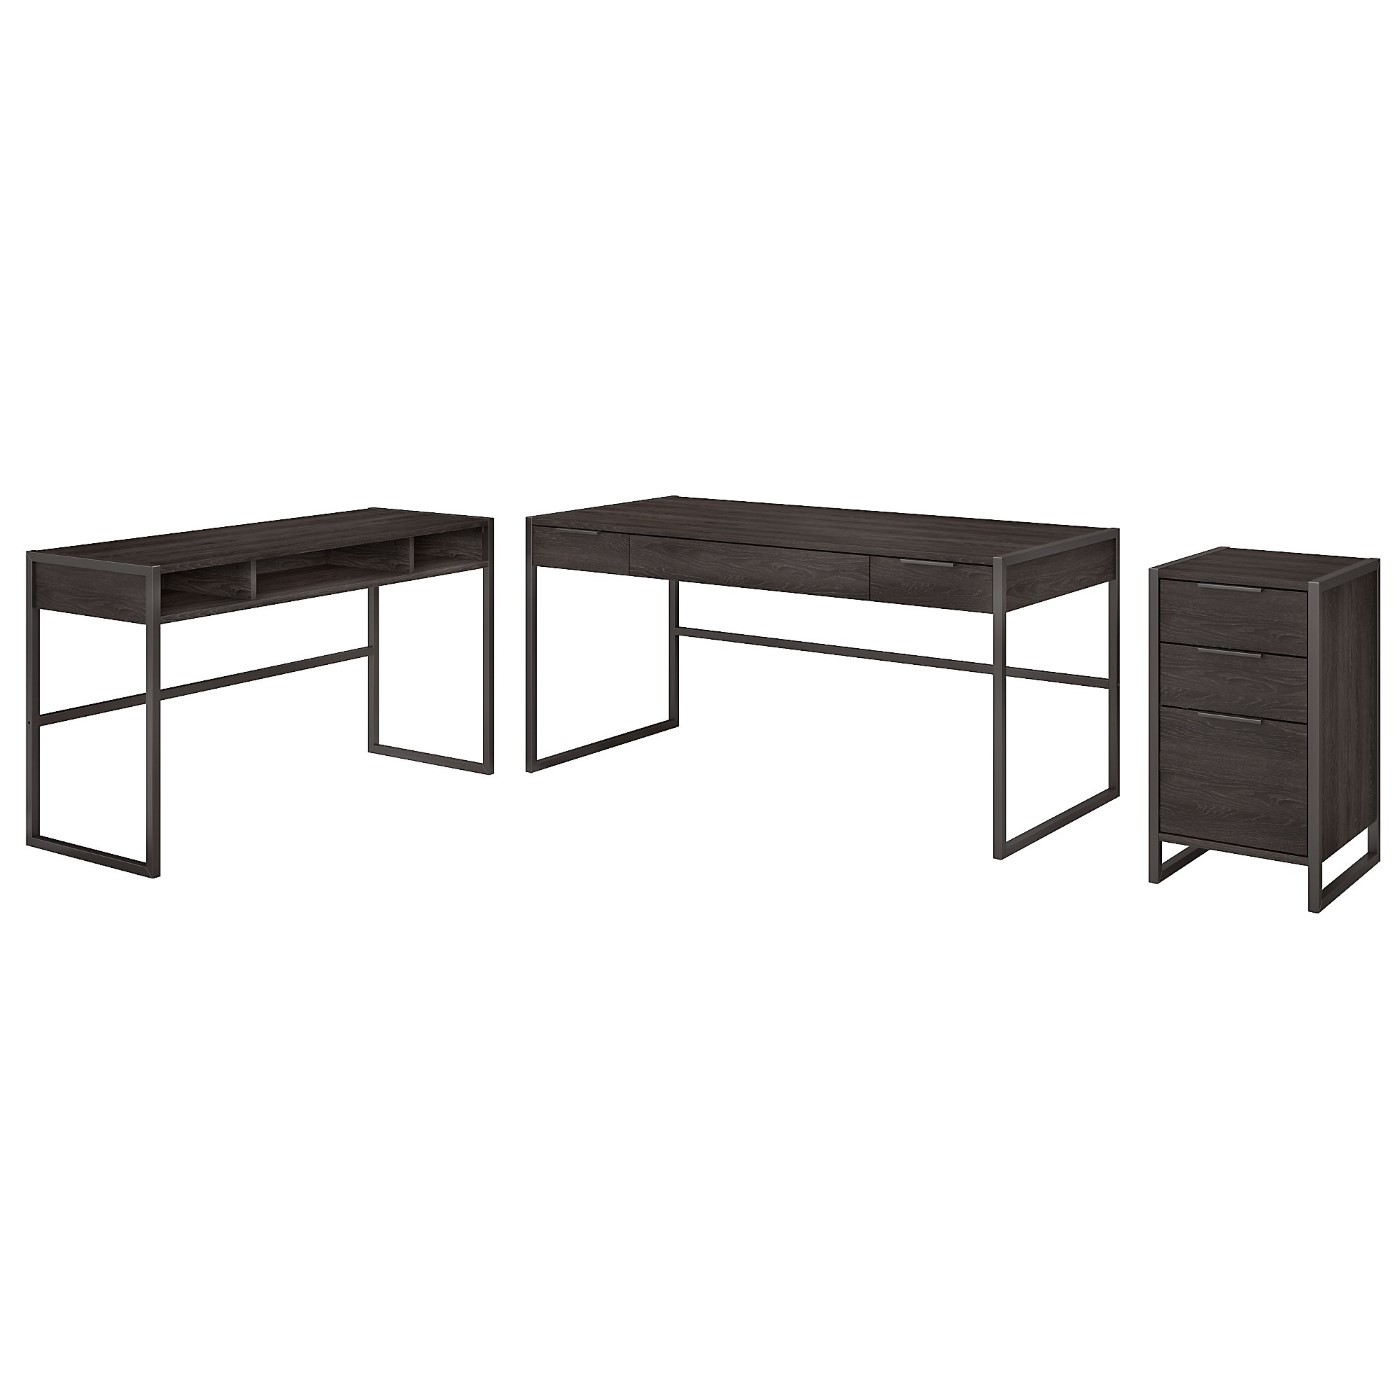 </b></font><b>The kathy ireland� Atria 60W L Shaped Desk with 3 Drawer File Cabinet is Sustainable Eco Friendly Furniture. Includes Free Shipping! 30H x 72L x 72W</font>. <p>RATING:&#11088;&#11088;&#11088;&#11088;&#11088;</b></font></b>